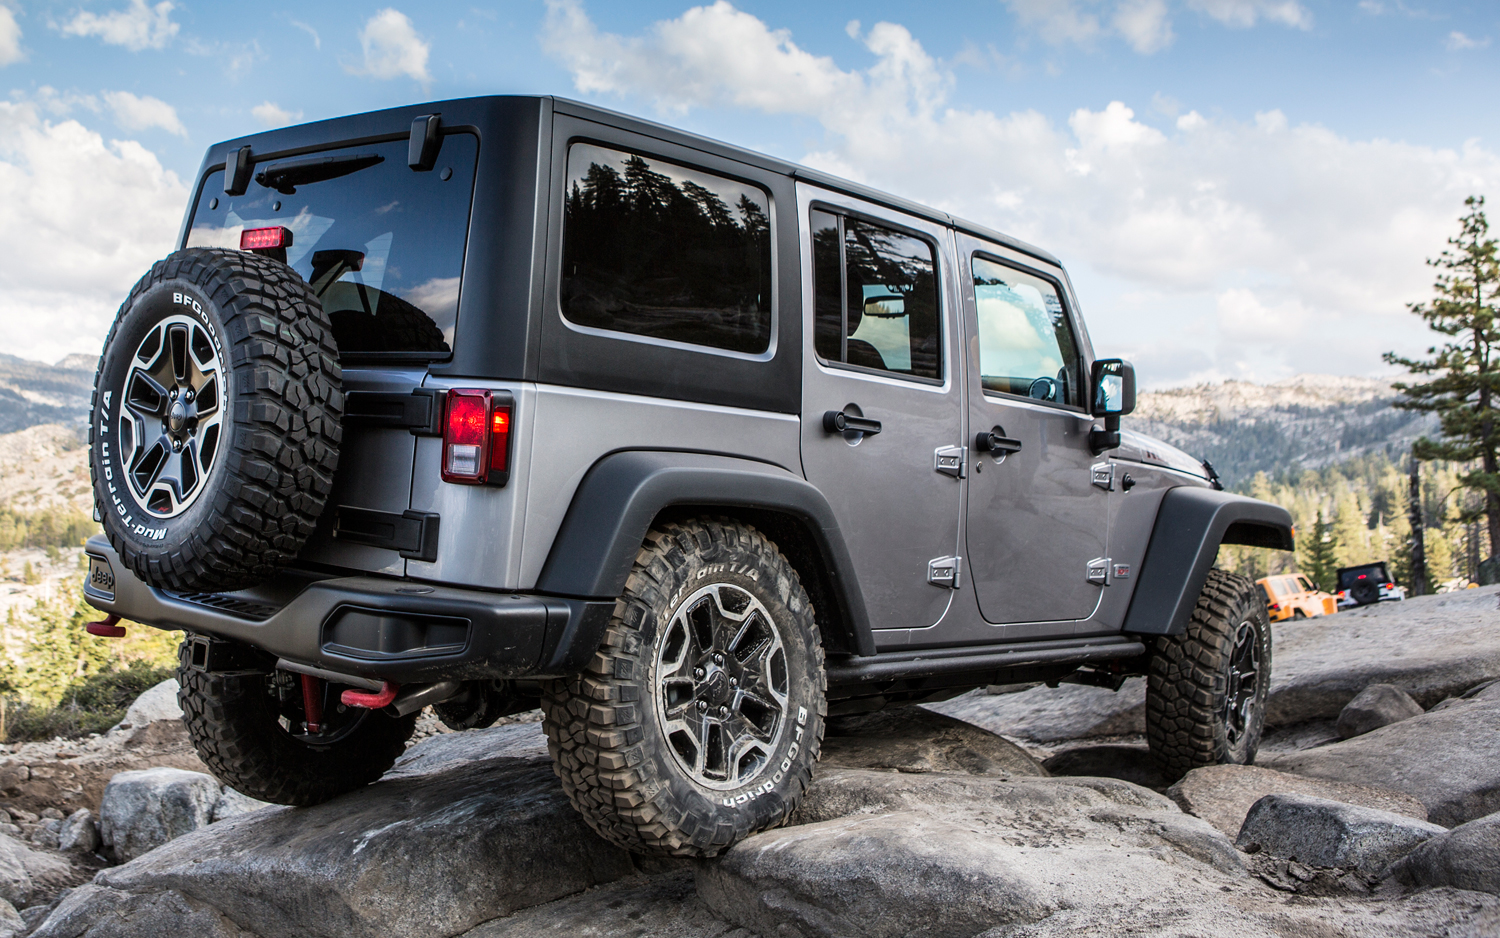 The Jeep Jk Wrangler The Most Overpriced Suv Ever